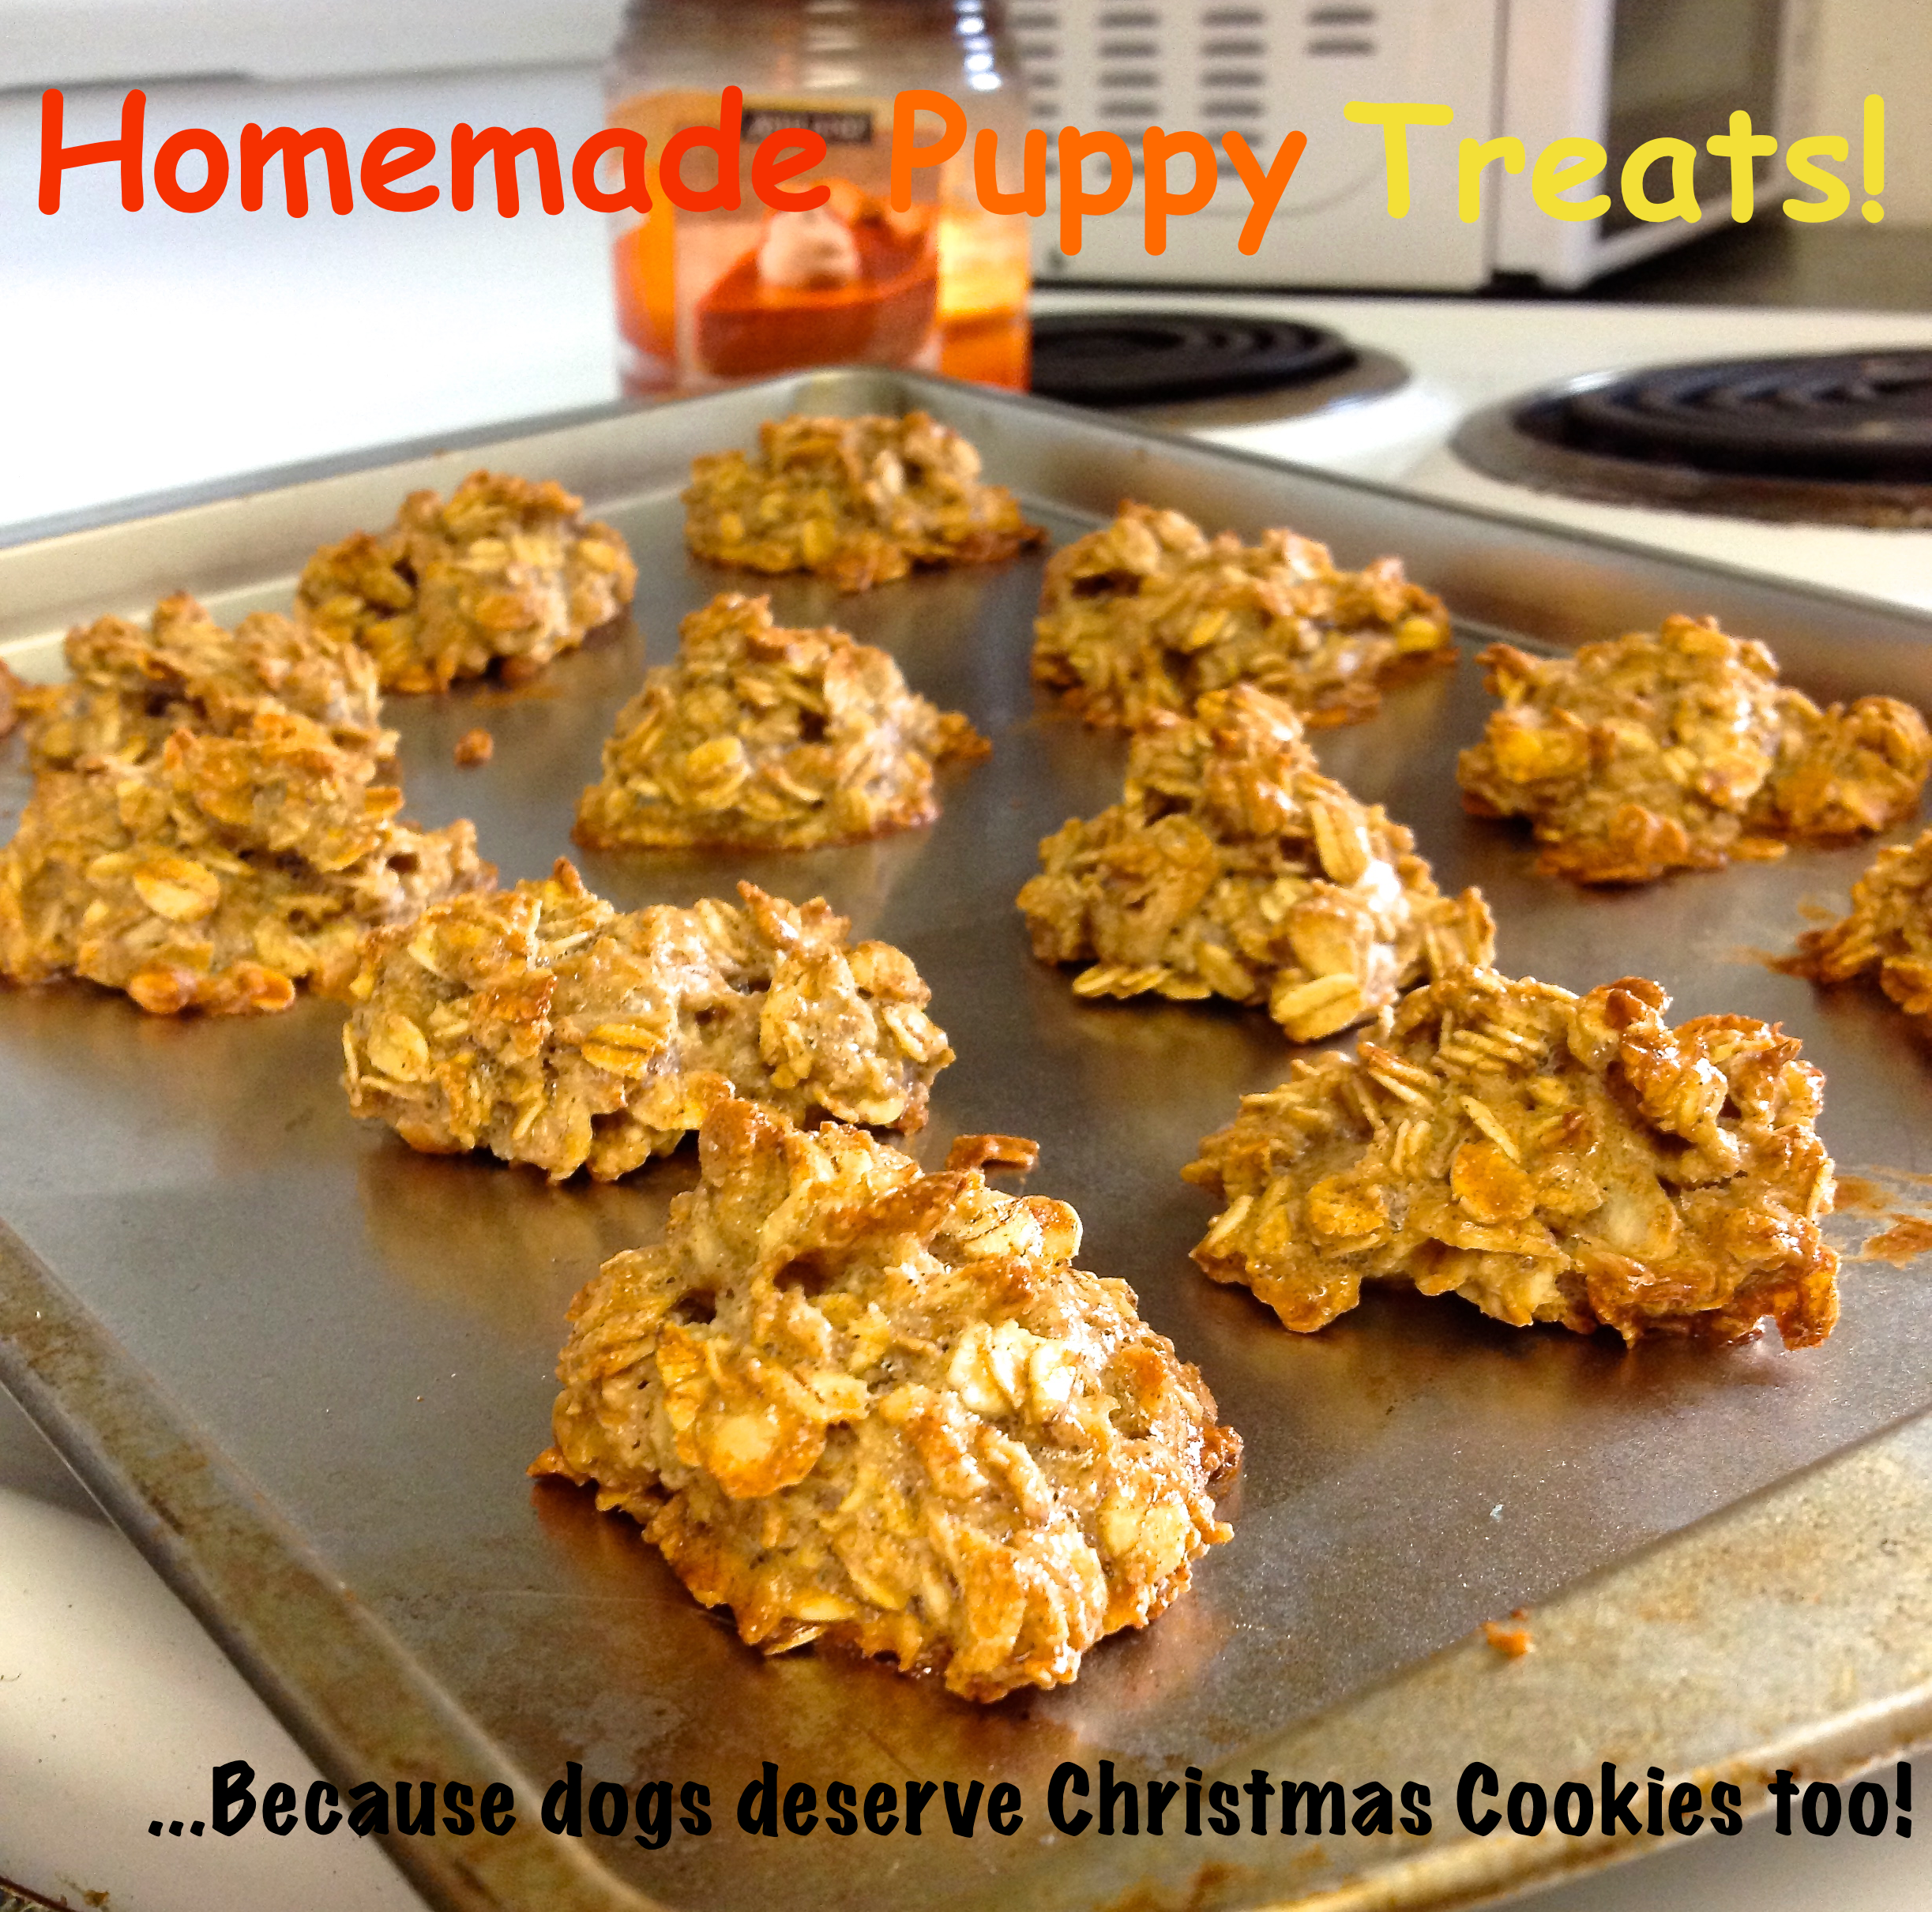 Homemade Dog Treats.  http://thegreenpalate.tumblr.com